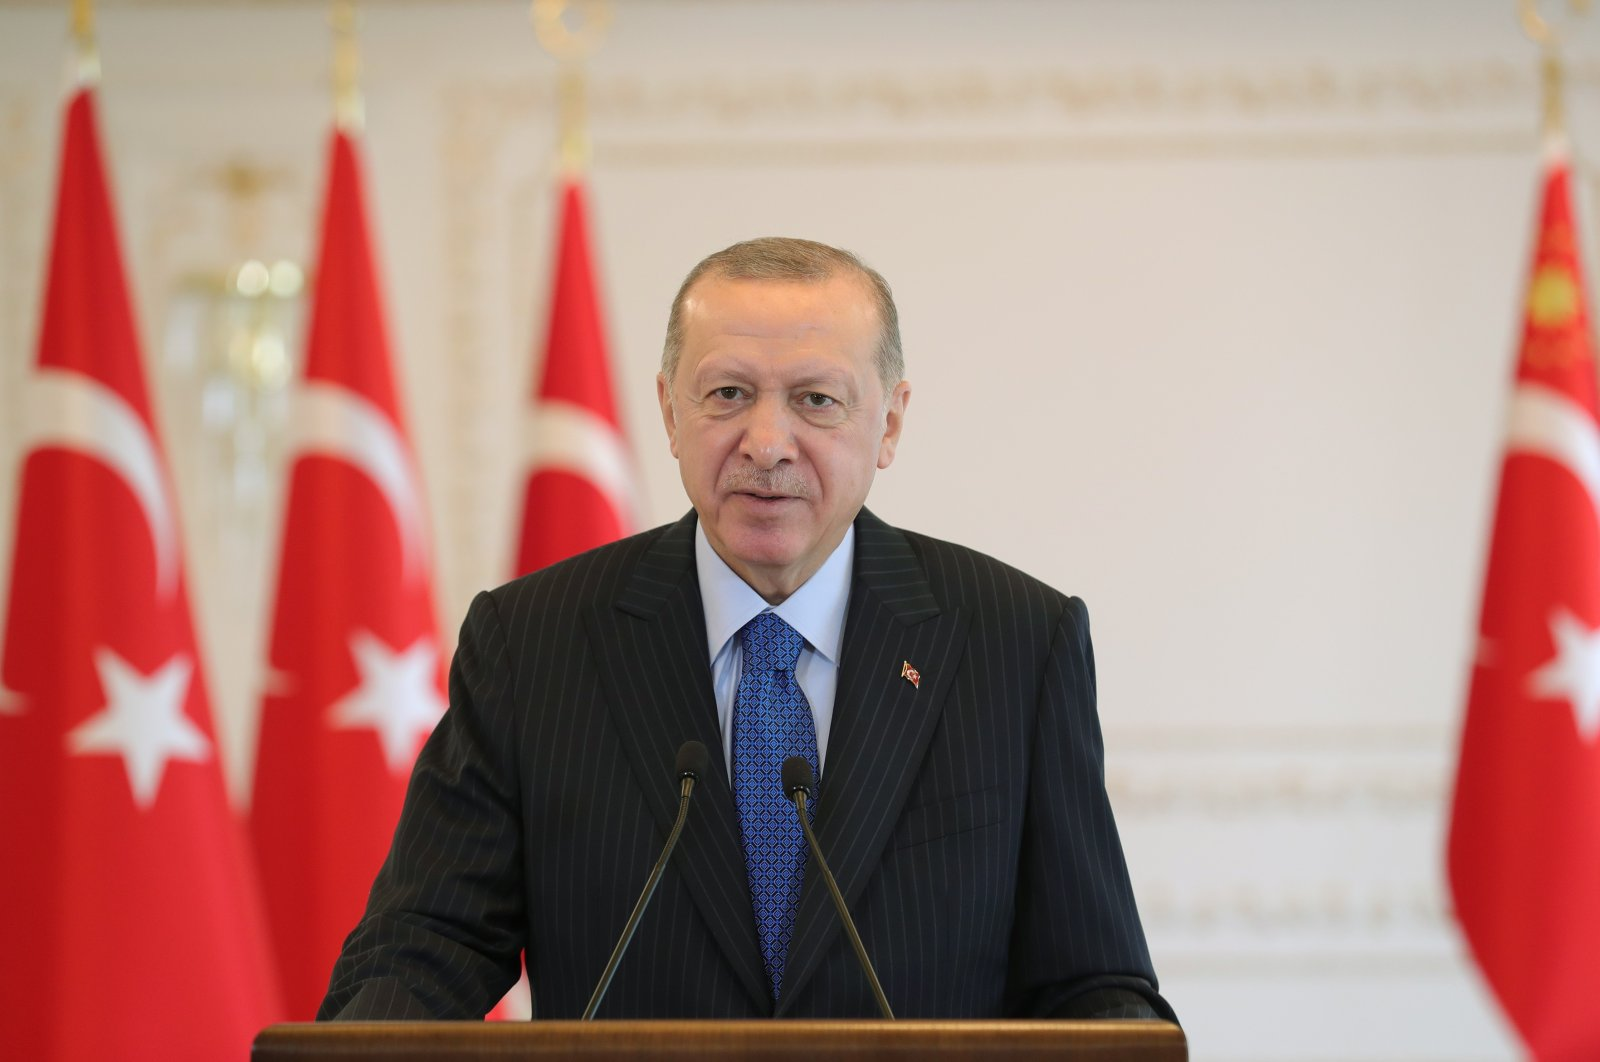 President Erdoğan speaks at the opening ceremony of the Northern Marmara Highway via teleconference, Dec. 19, 2020 (AA Photo)